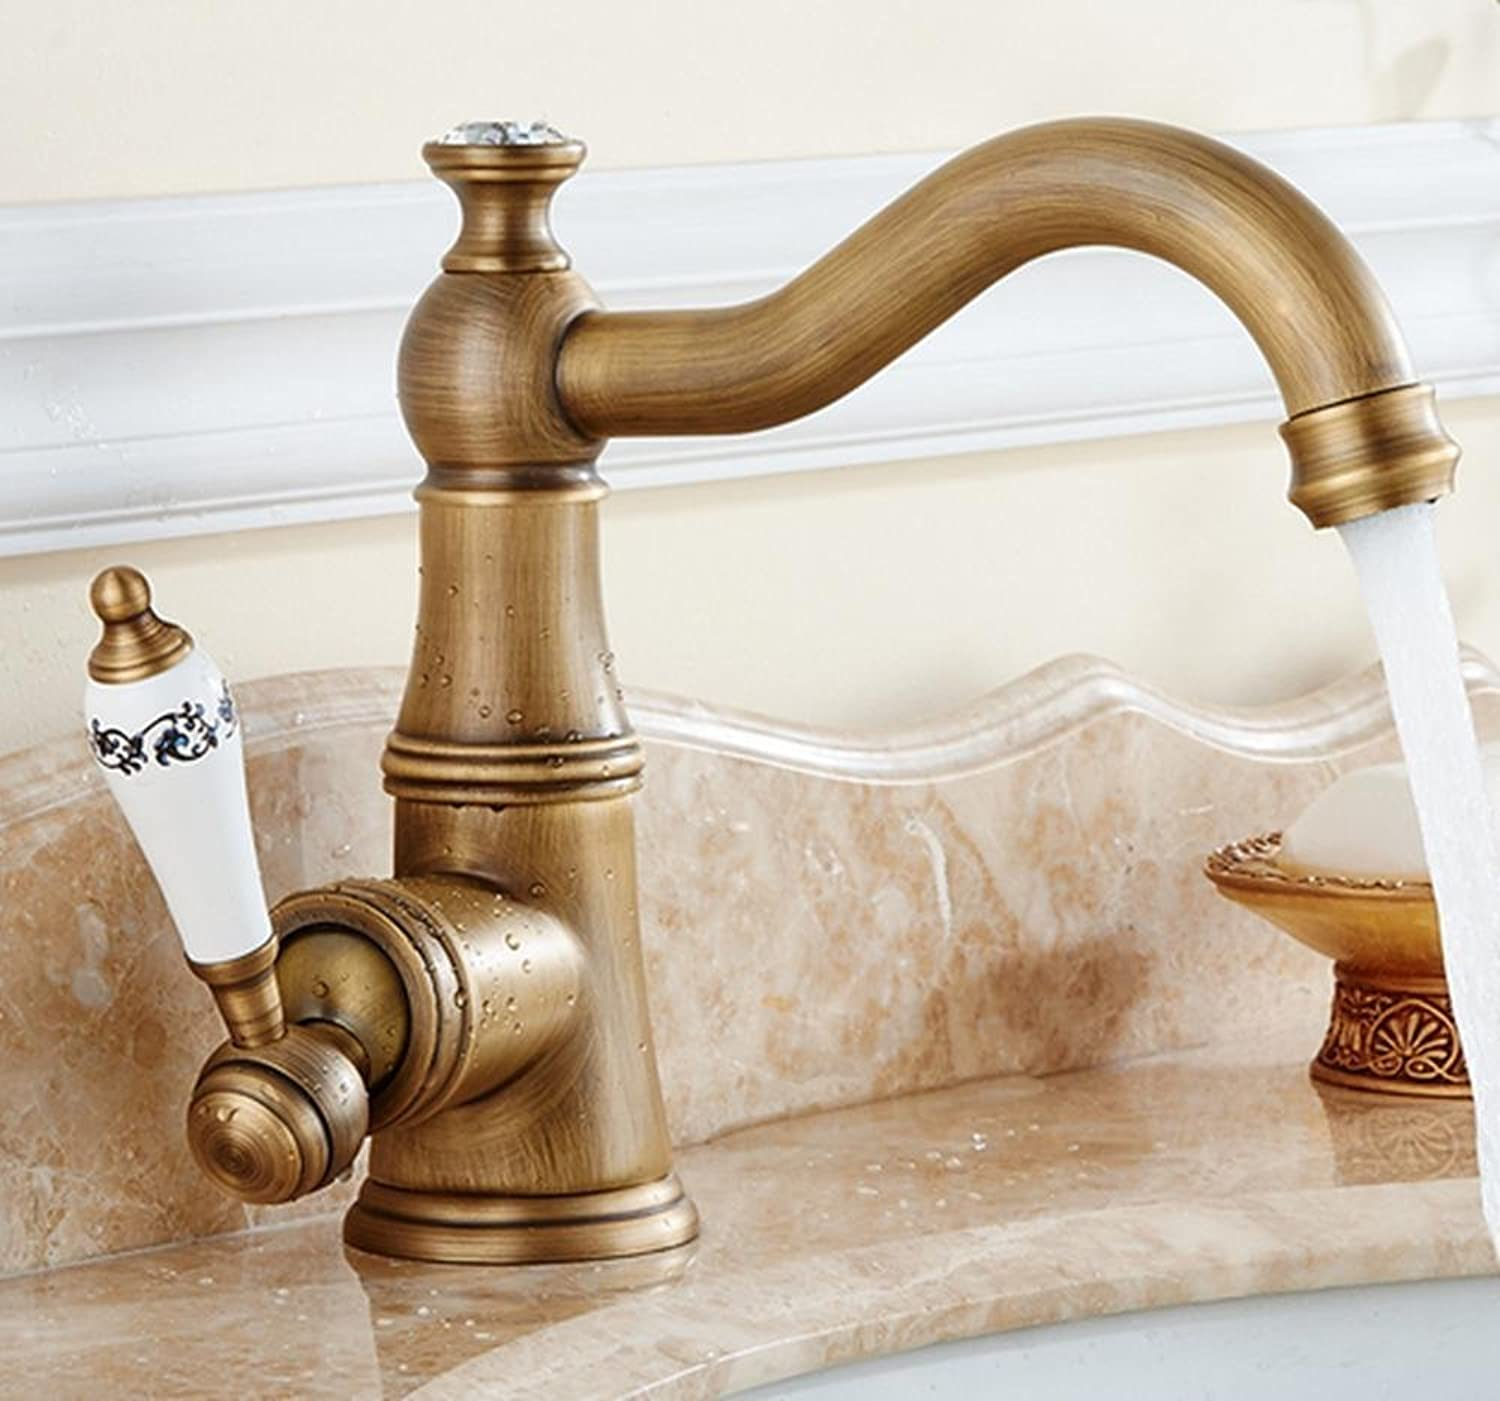 AIEK All Copper Antique Bathroom Basin Faucet, Single Hole Hot And Cold Water Mixing 360 ??redating Faucet